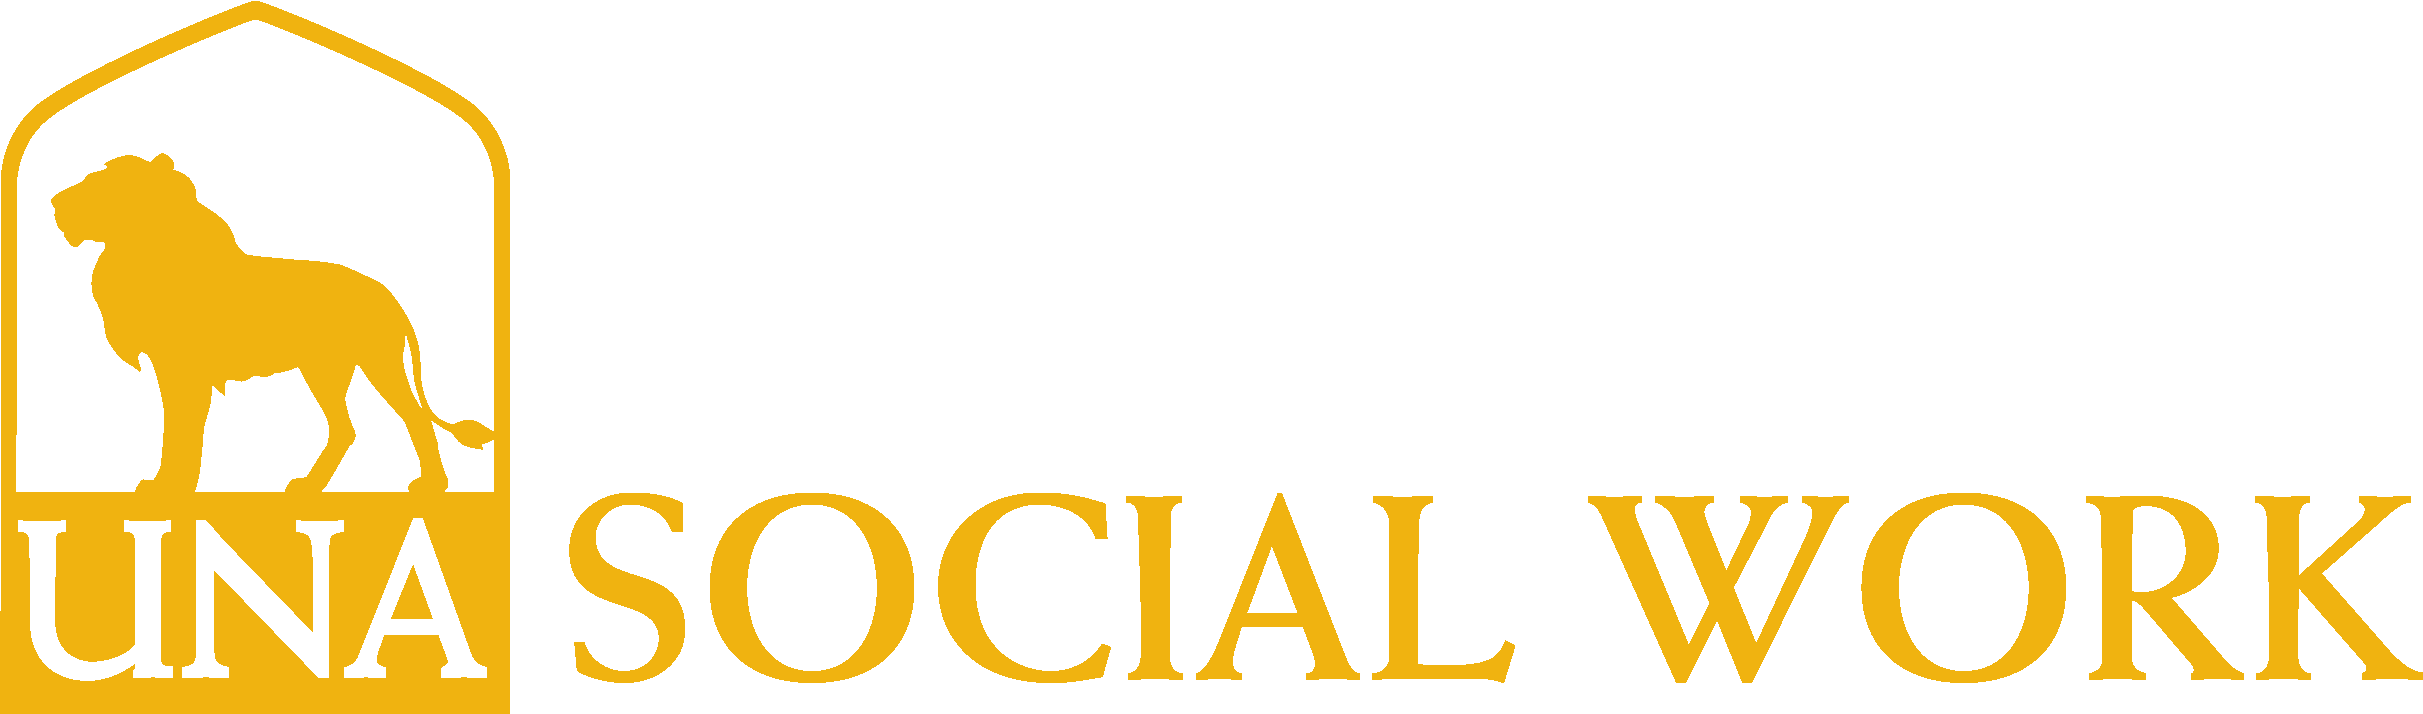 College of Arts and Sciences - Social Work Logo - Gold - Version 3